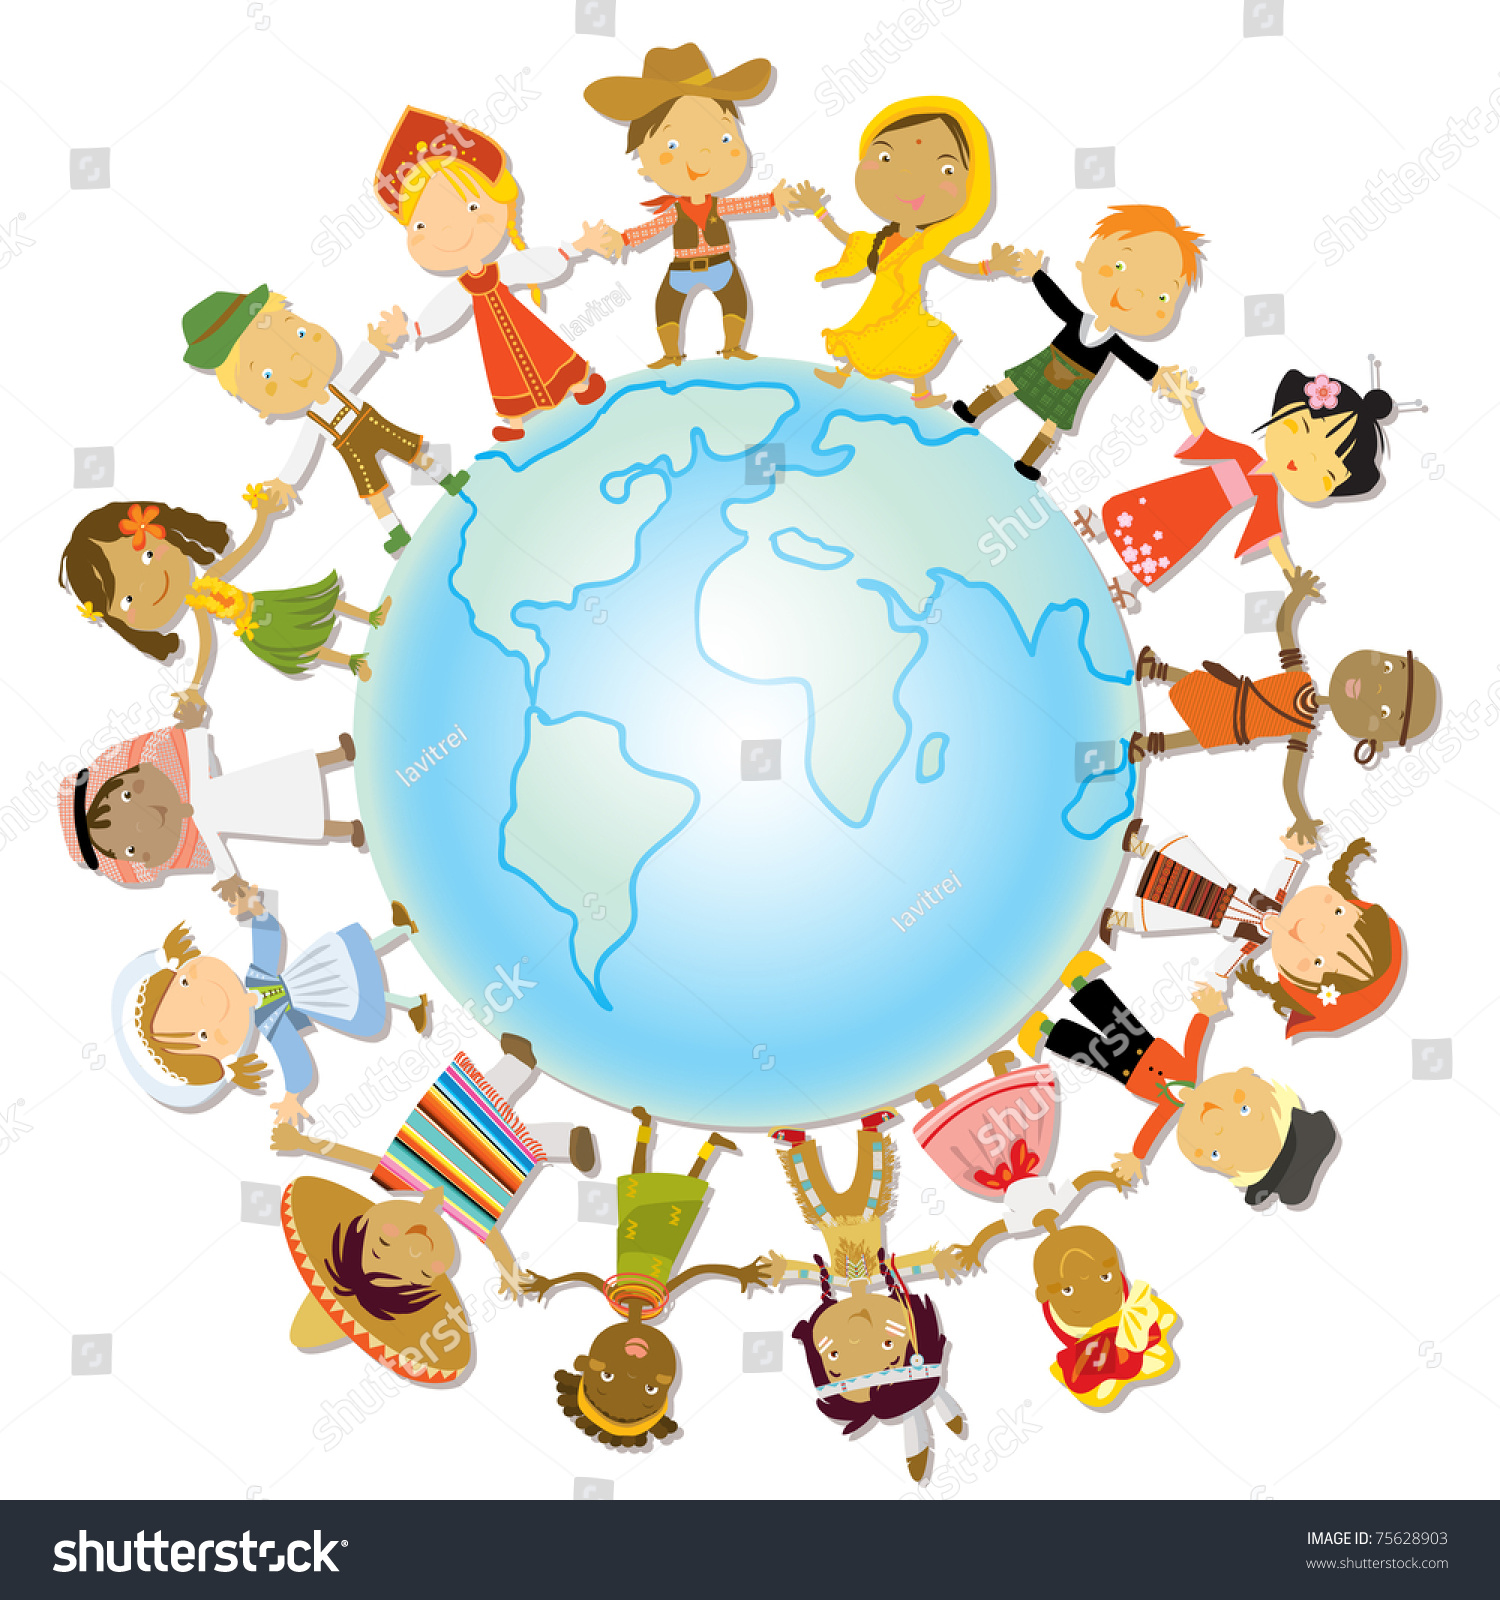 Multicultural Children On Planet Earth Cultural Stock ...